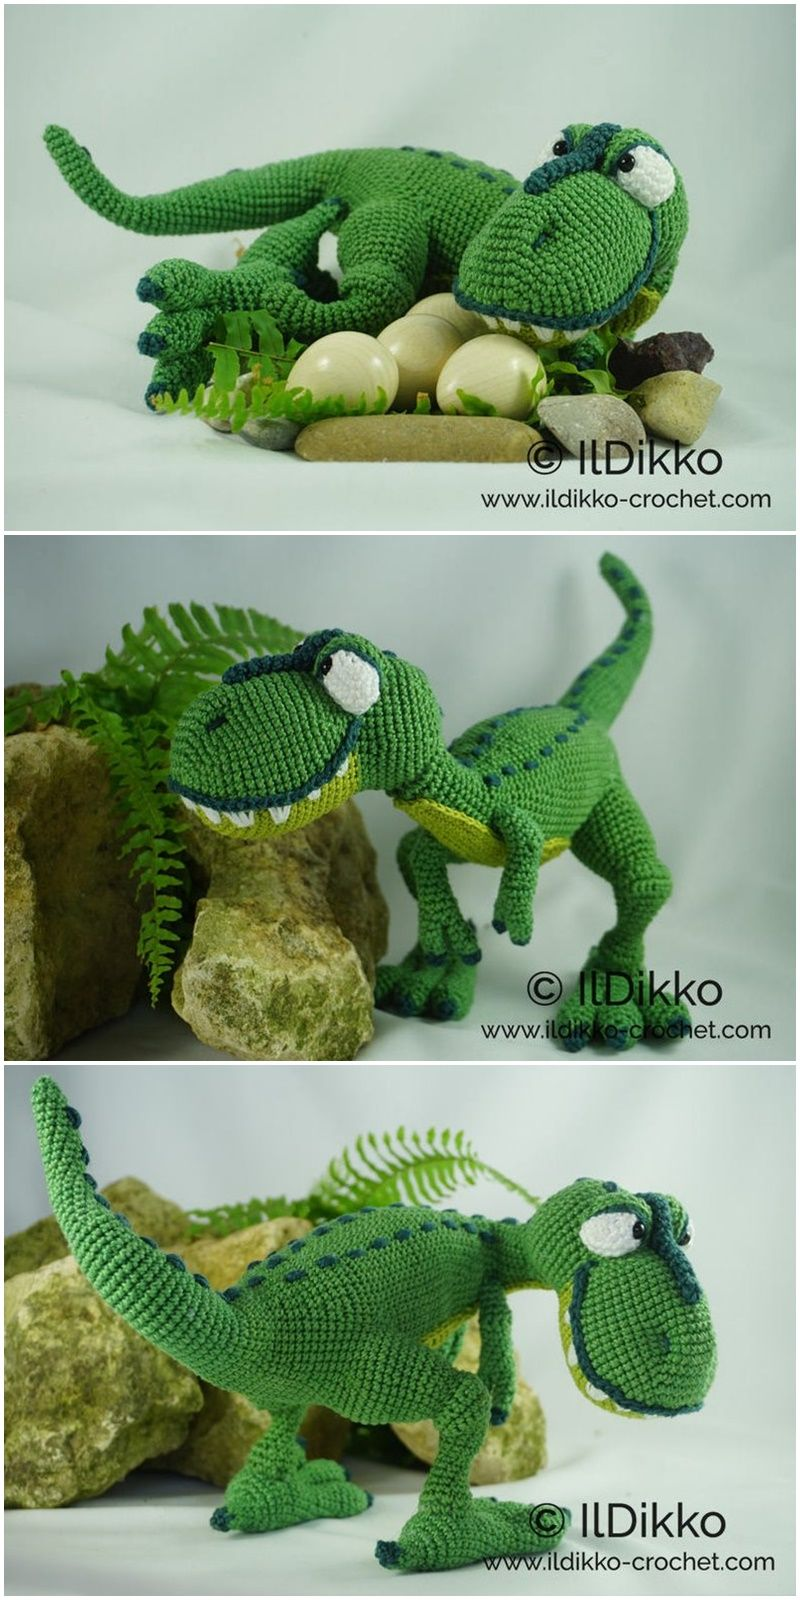 Free Amigurumi Doll And Animal Crochet Patterns - Amigurumi #crochetdinosaurpatterns